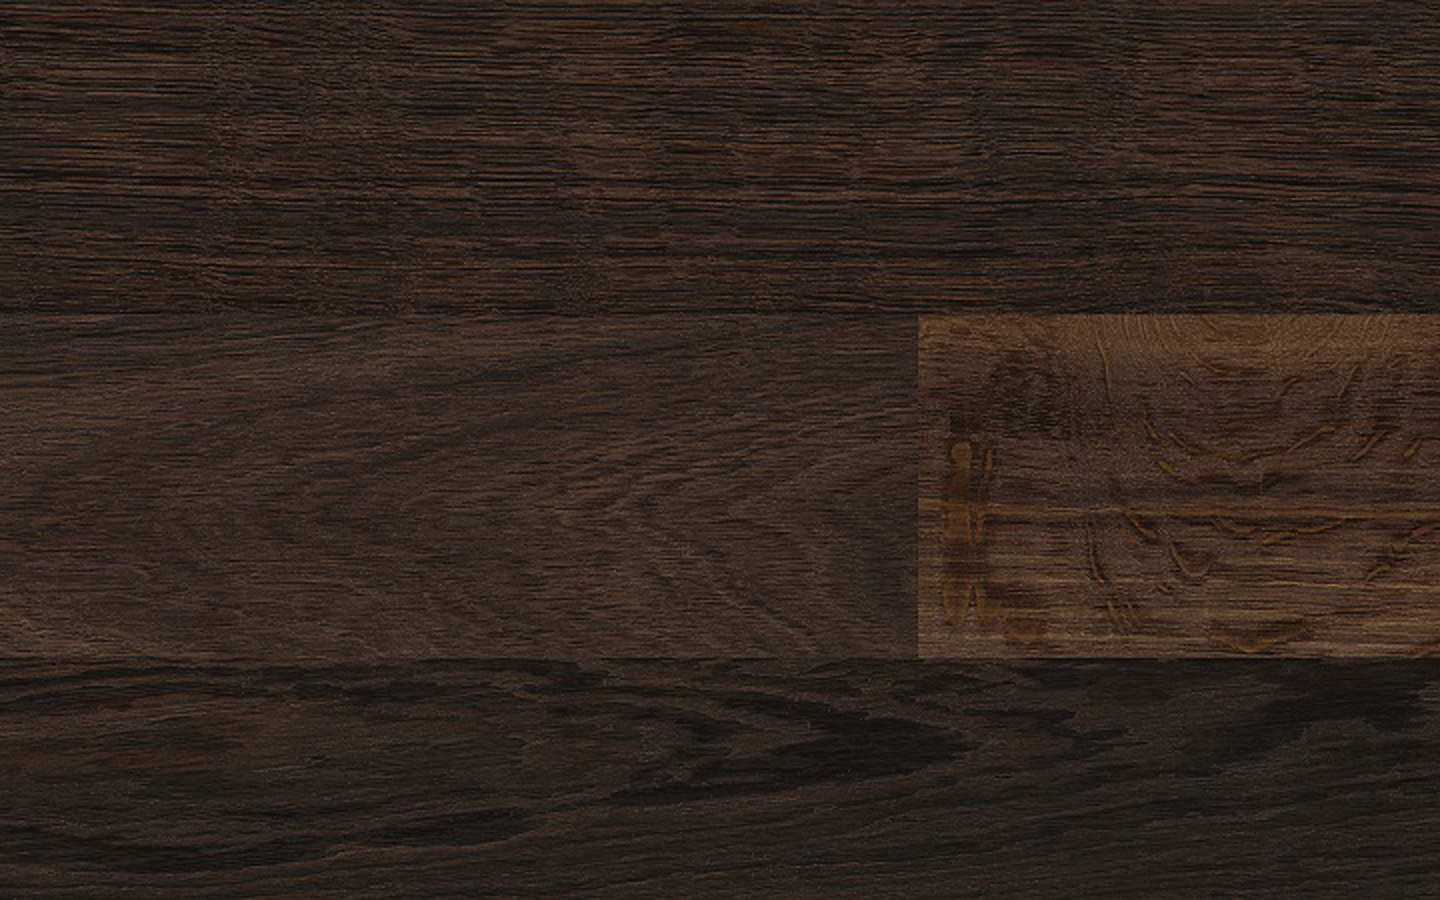 Château by adler - Oak Fumé K50 standard wire brushed natural oiled - 19 x 180-350 x 1800-5000 mm